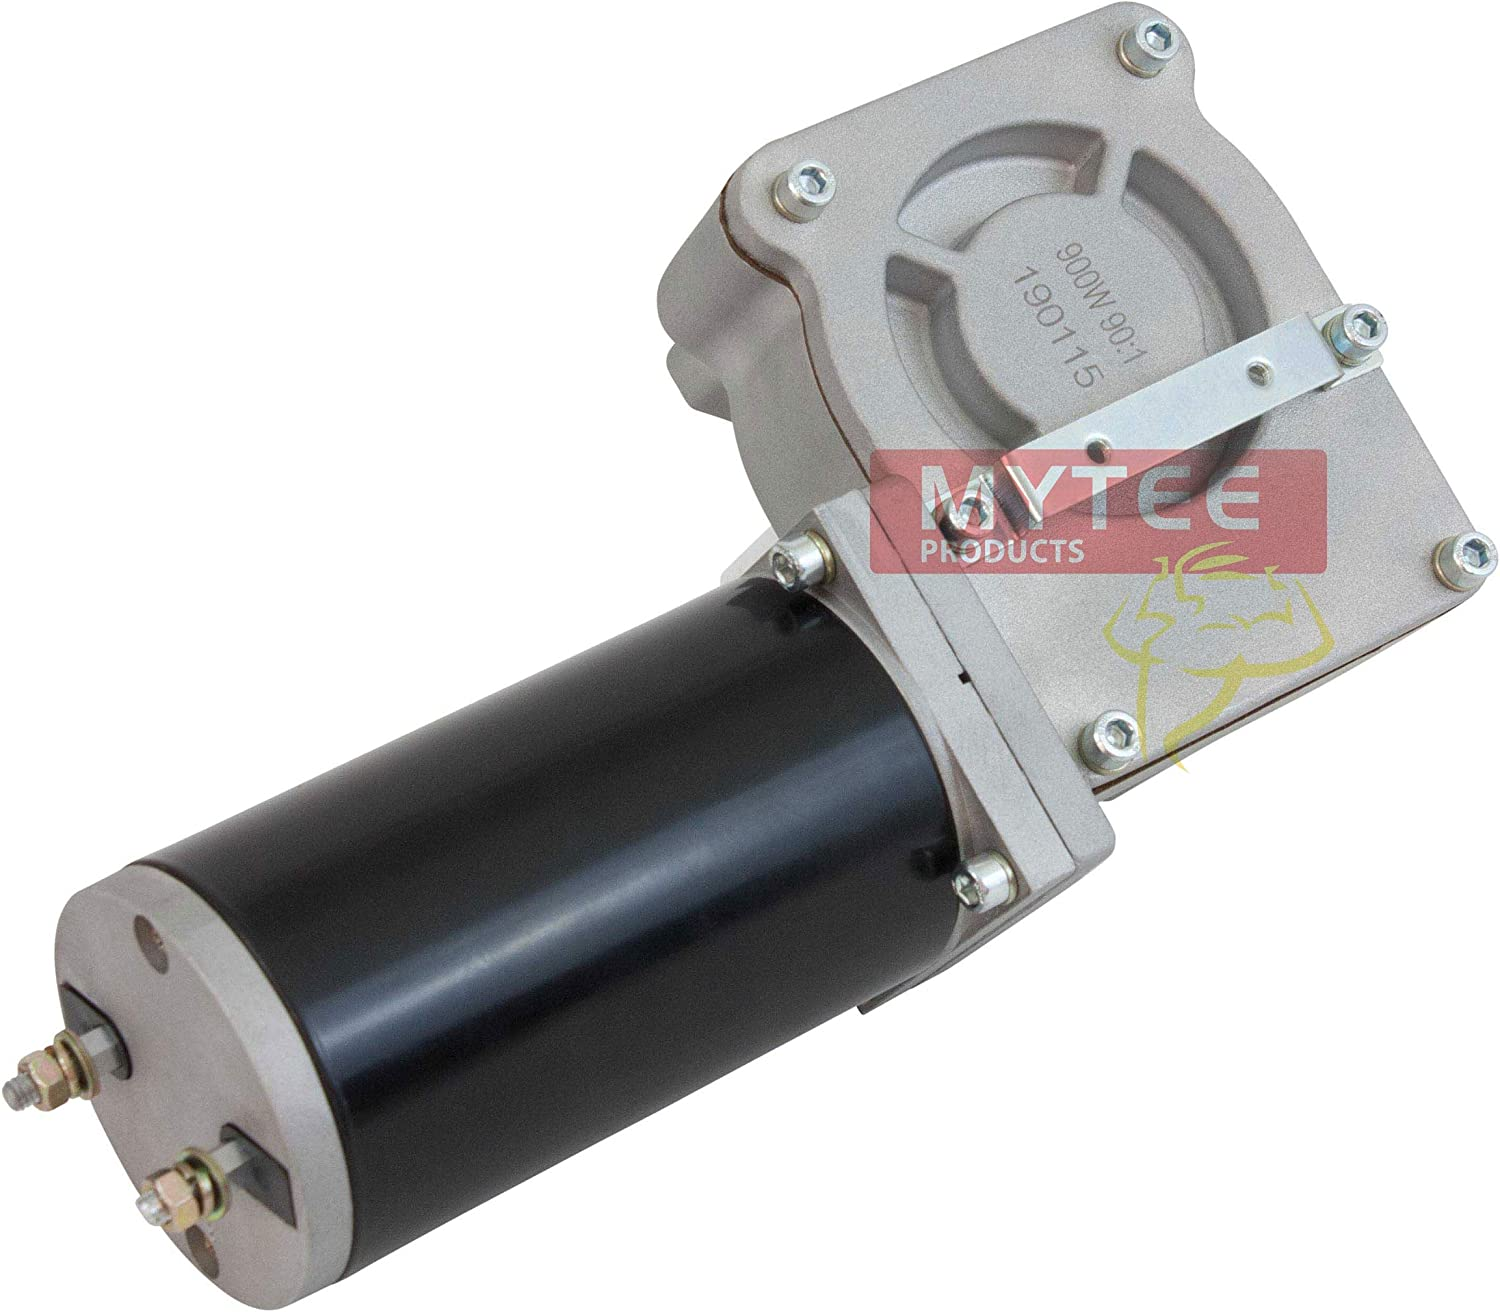 Mytee Products 900W 90:1 Tarp Motor for Dump Truck Tarp Systems with Chrome Cover 12VDC 41 AMPS 1 Year Warranty 38 RPM